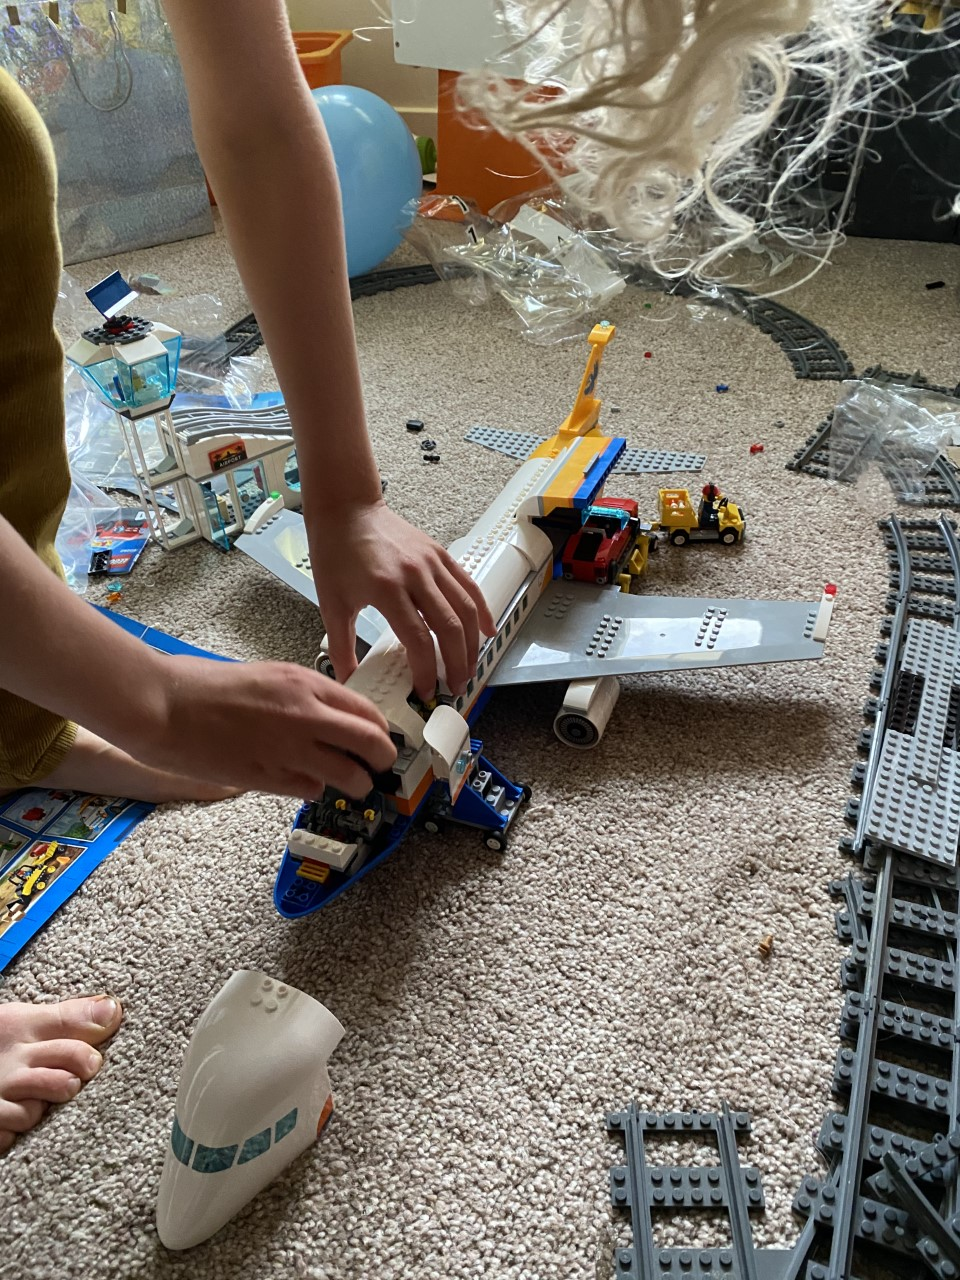 Lego airplane construction 9 year old